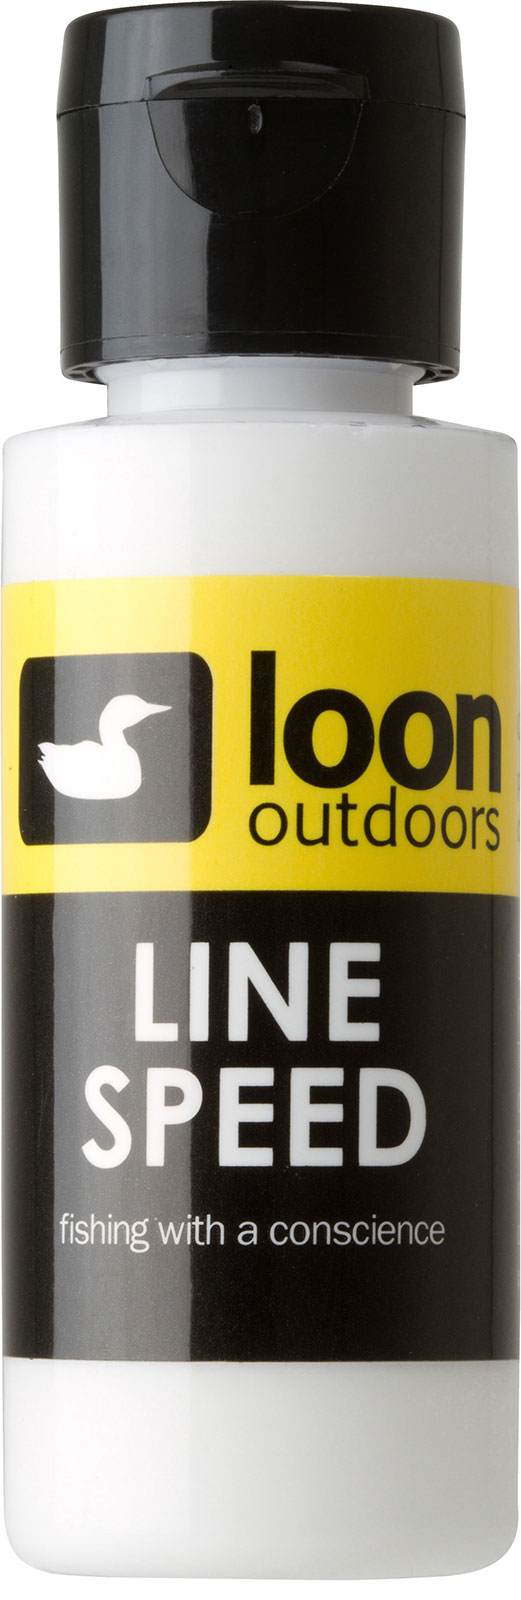 Loon outdoors line speed fly fishing line cleaner and dressing for Fishing line conditioner